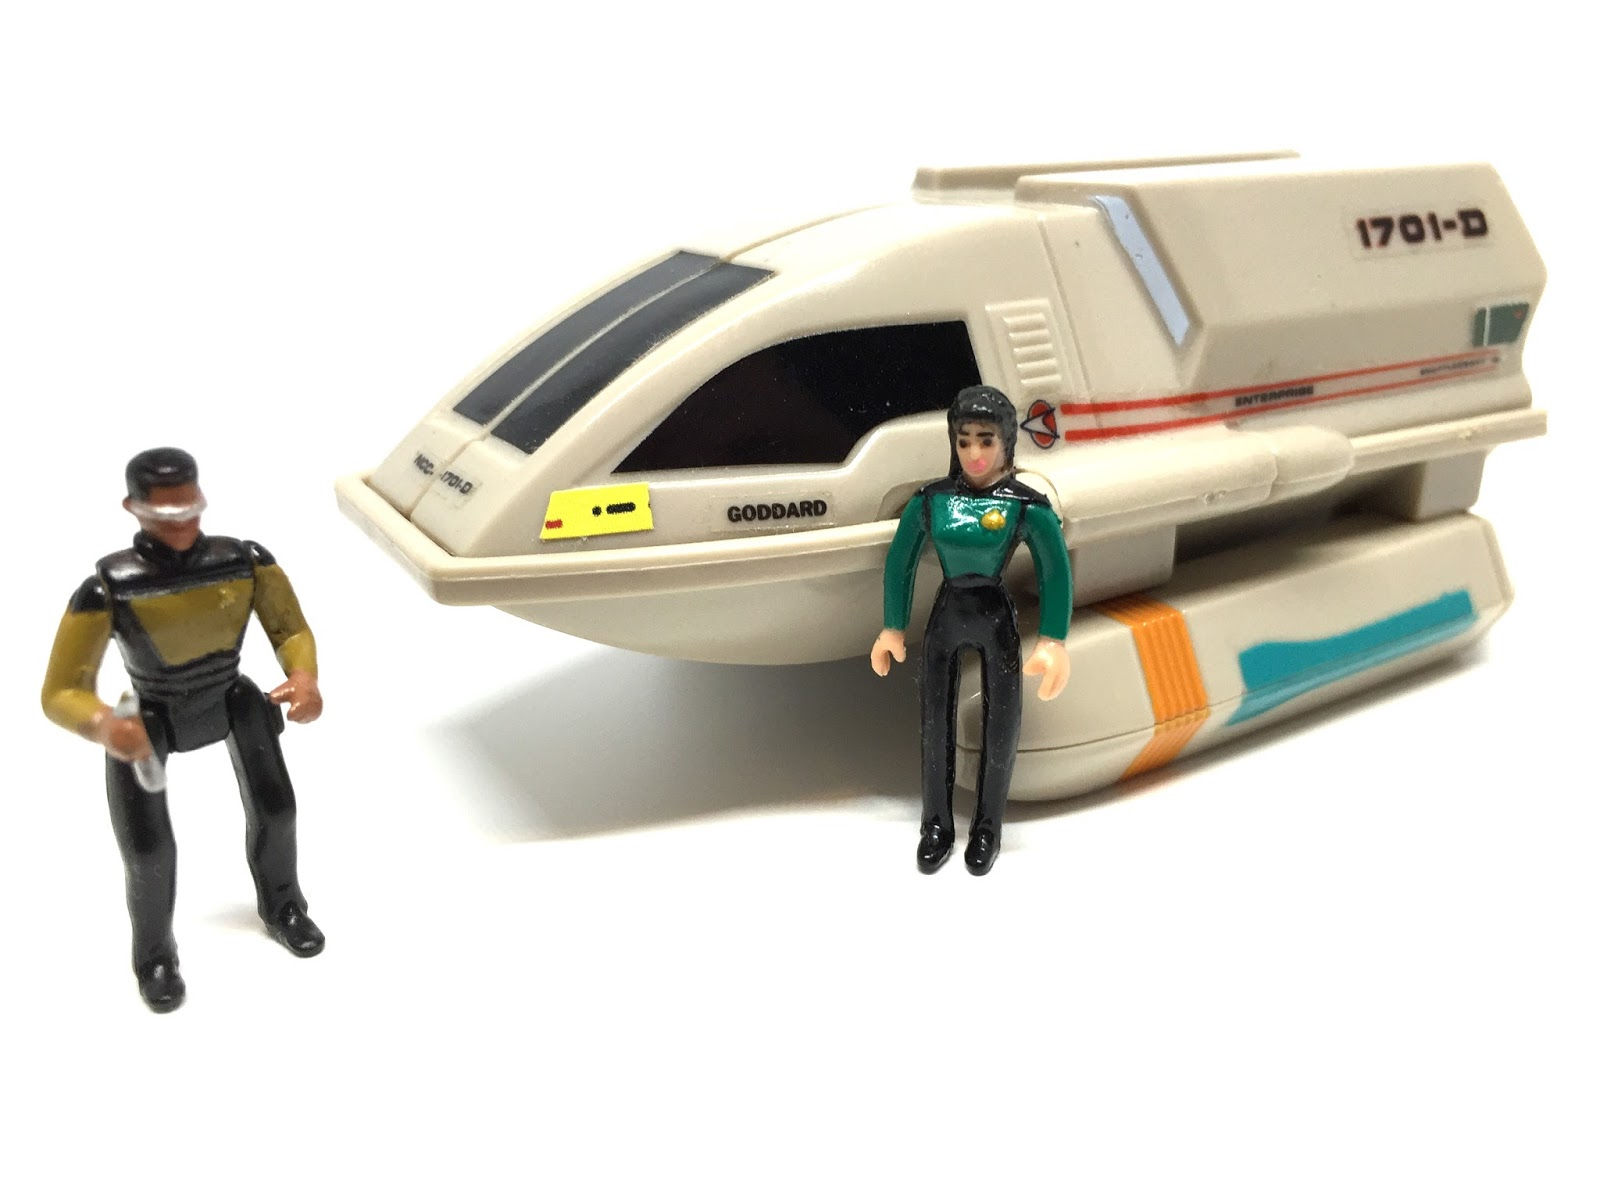 the toy of the week minivan or shuttle craft you decide